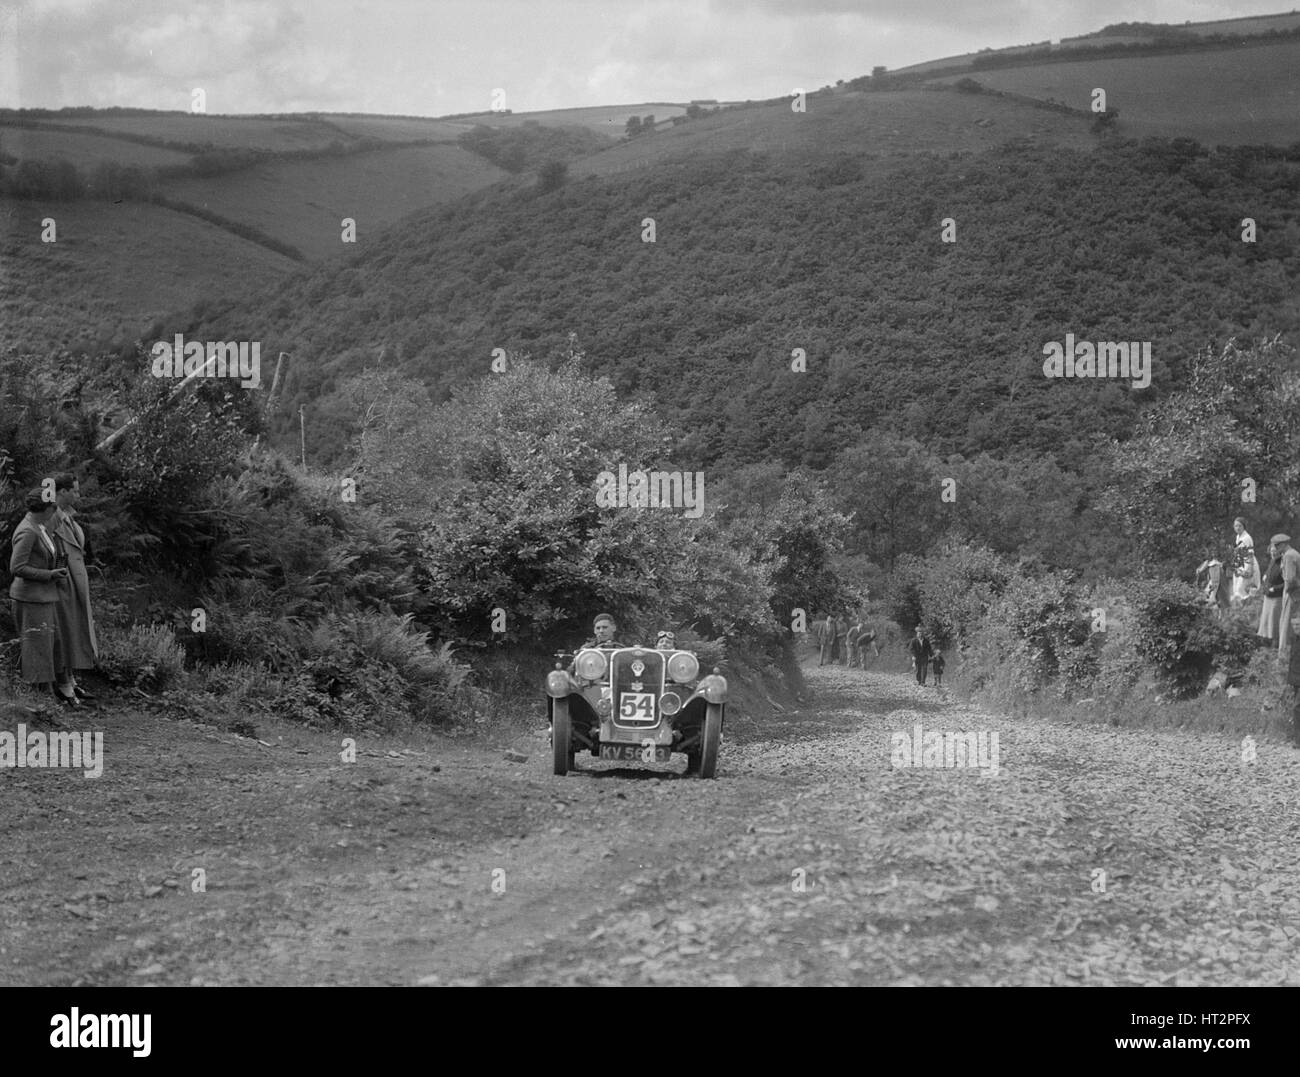 Singer 2-seater competing in the Mid Surrey AC Barnstaple Trial, Beggars Roost, Devon, 1934. Artist: Bill Brunell. - Stock Image